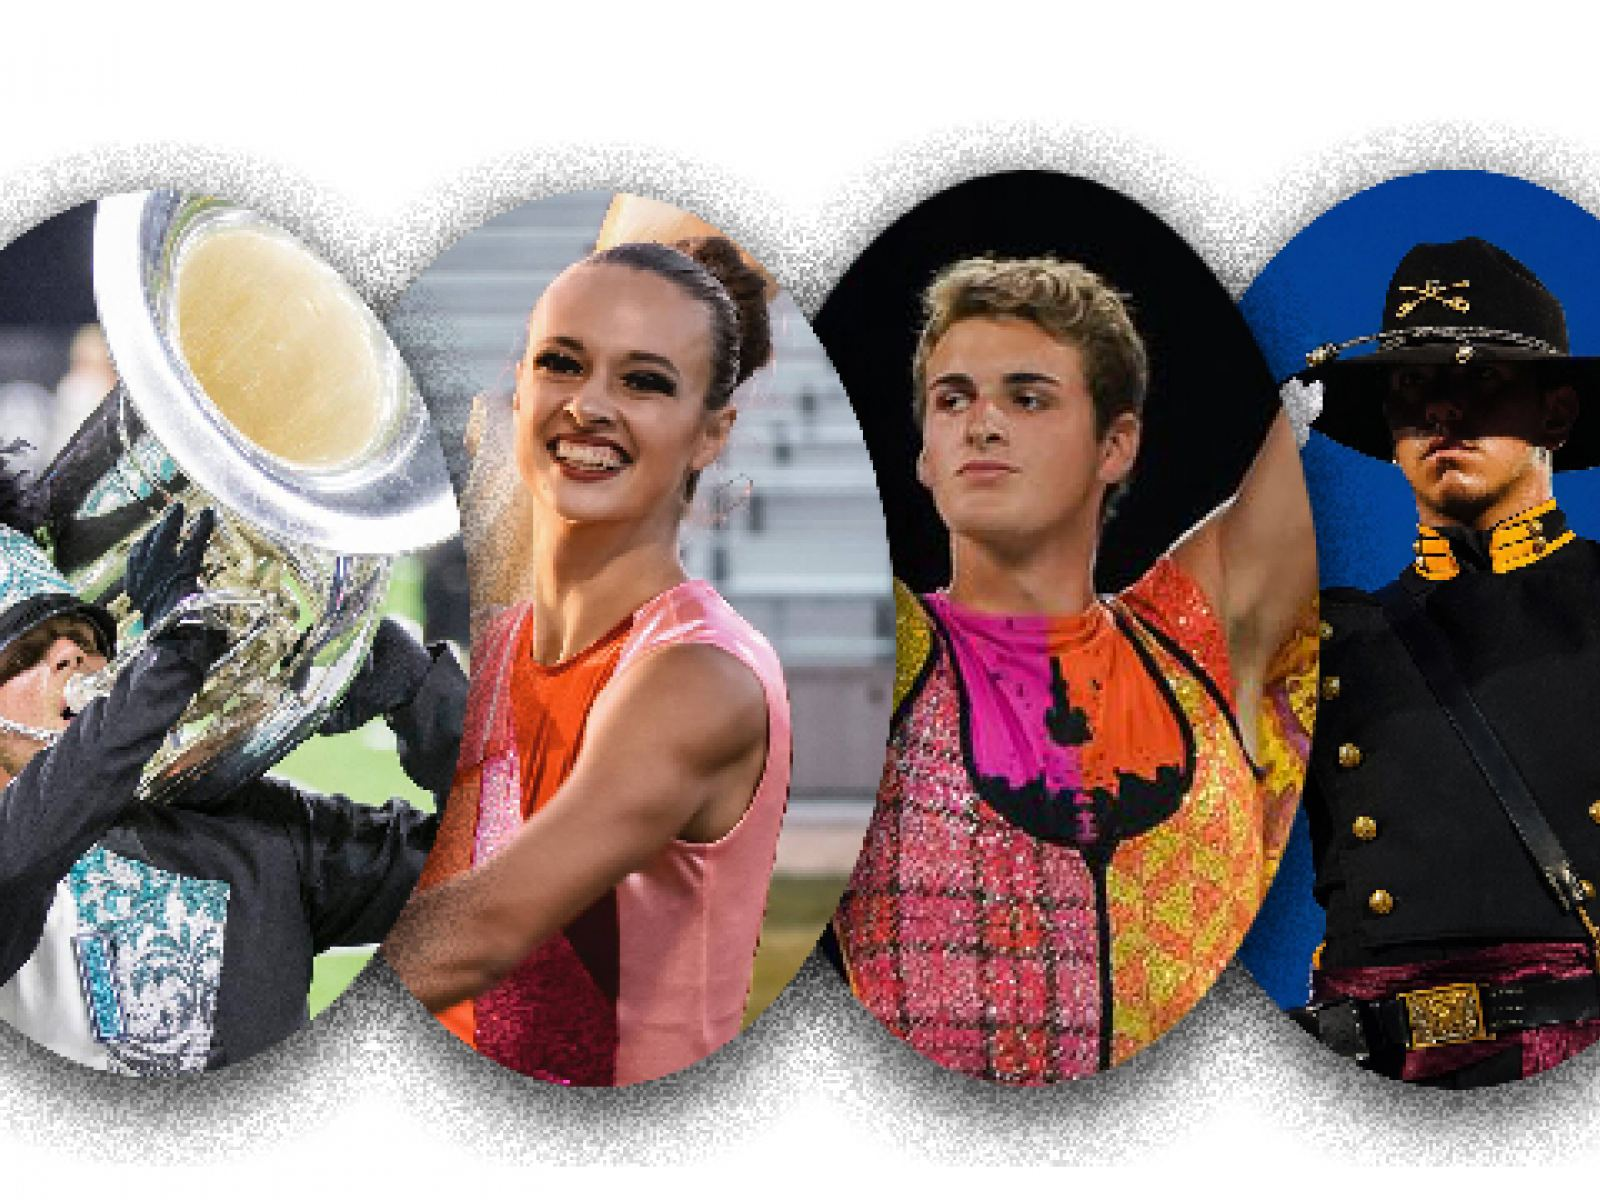 Images of drum and bugle corps performers